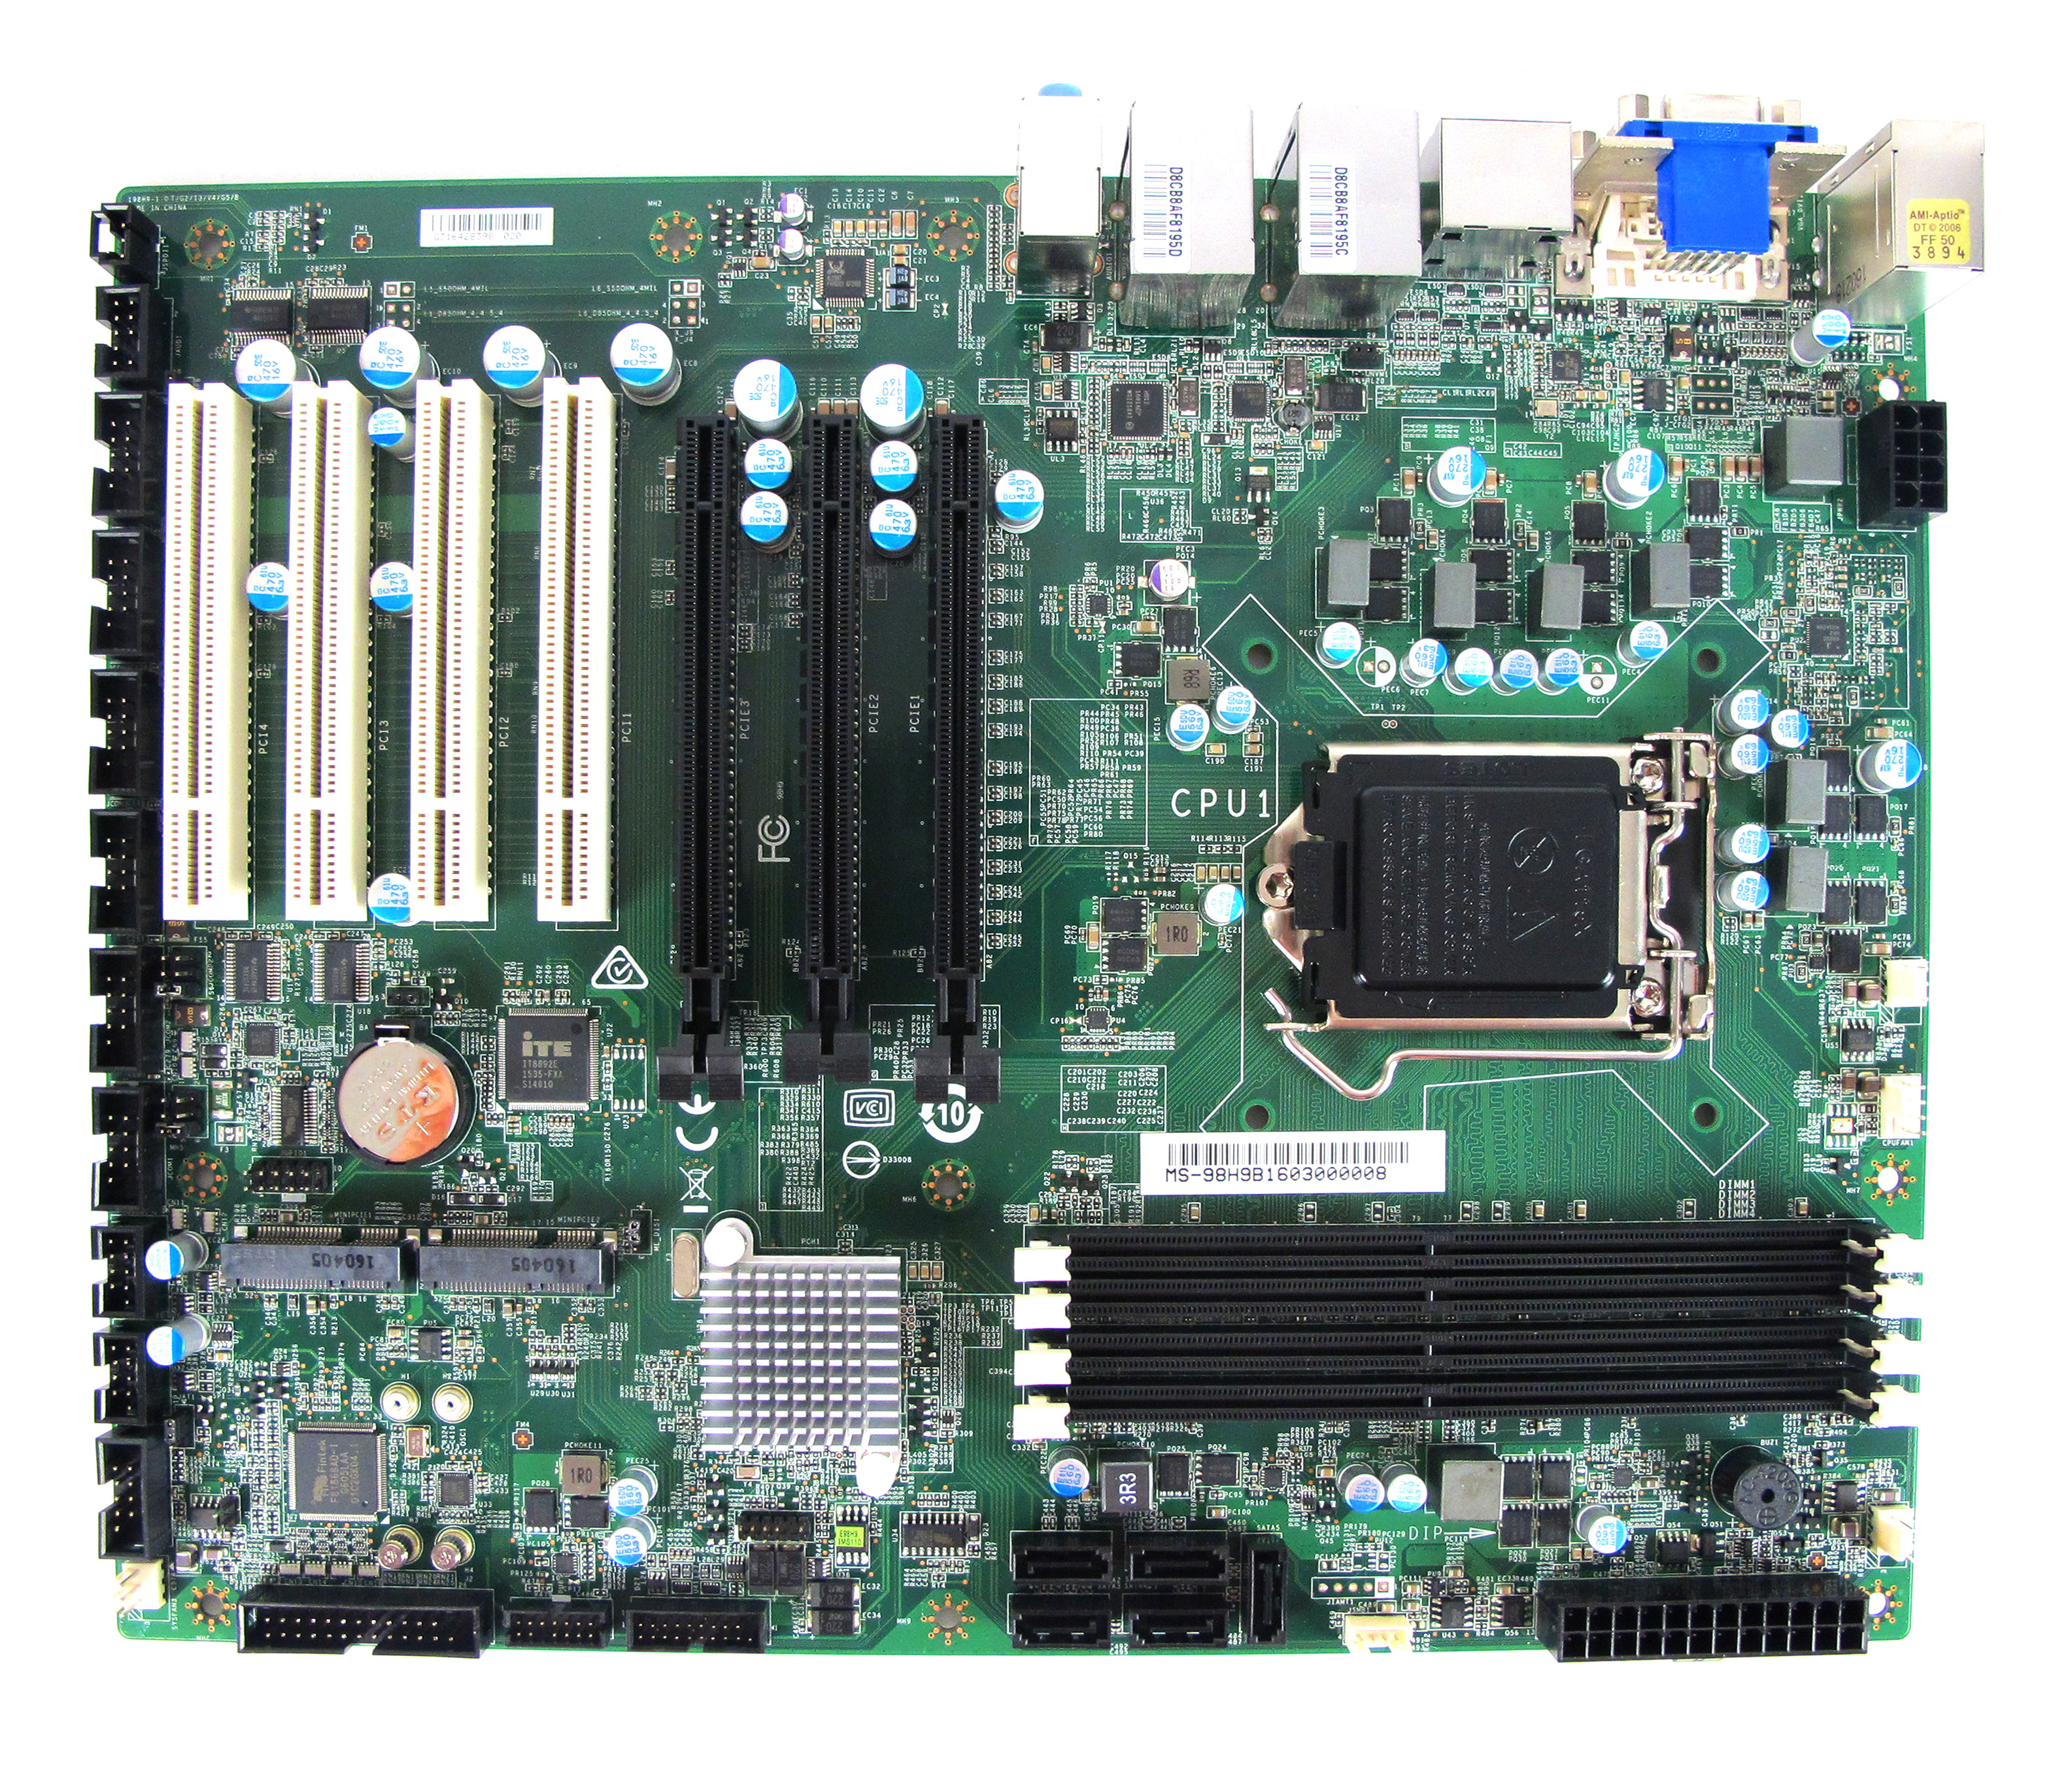 MS-98H9 Industrial Motherboard Top